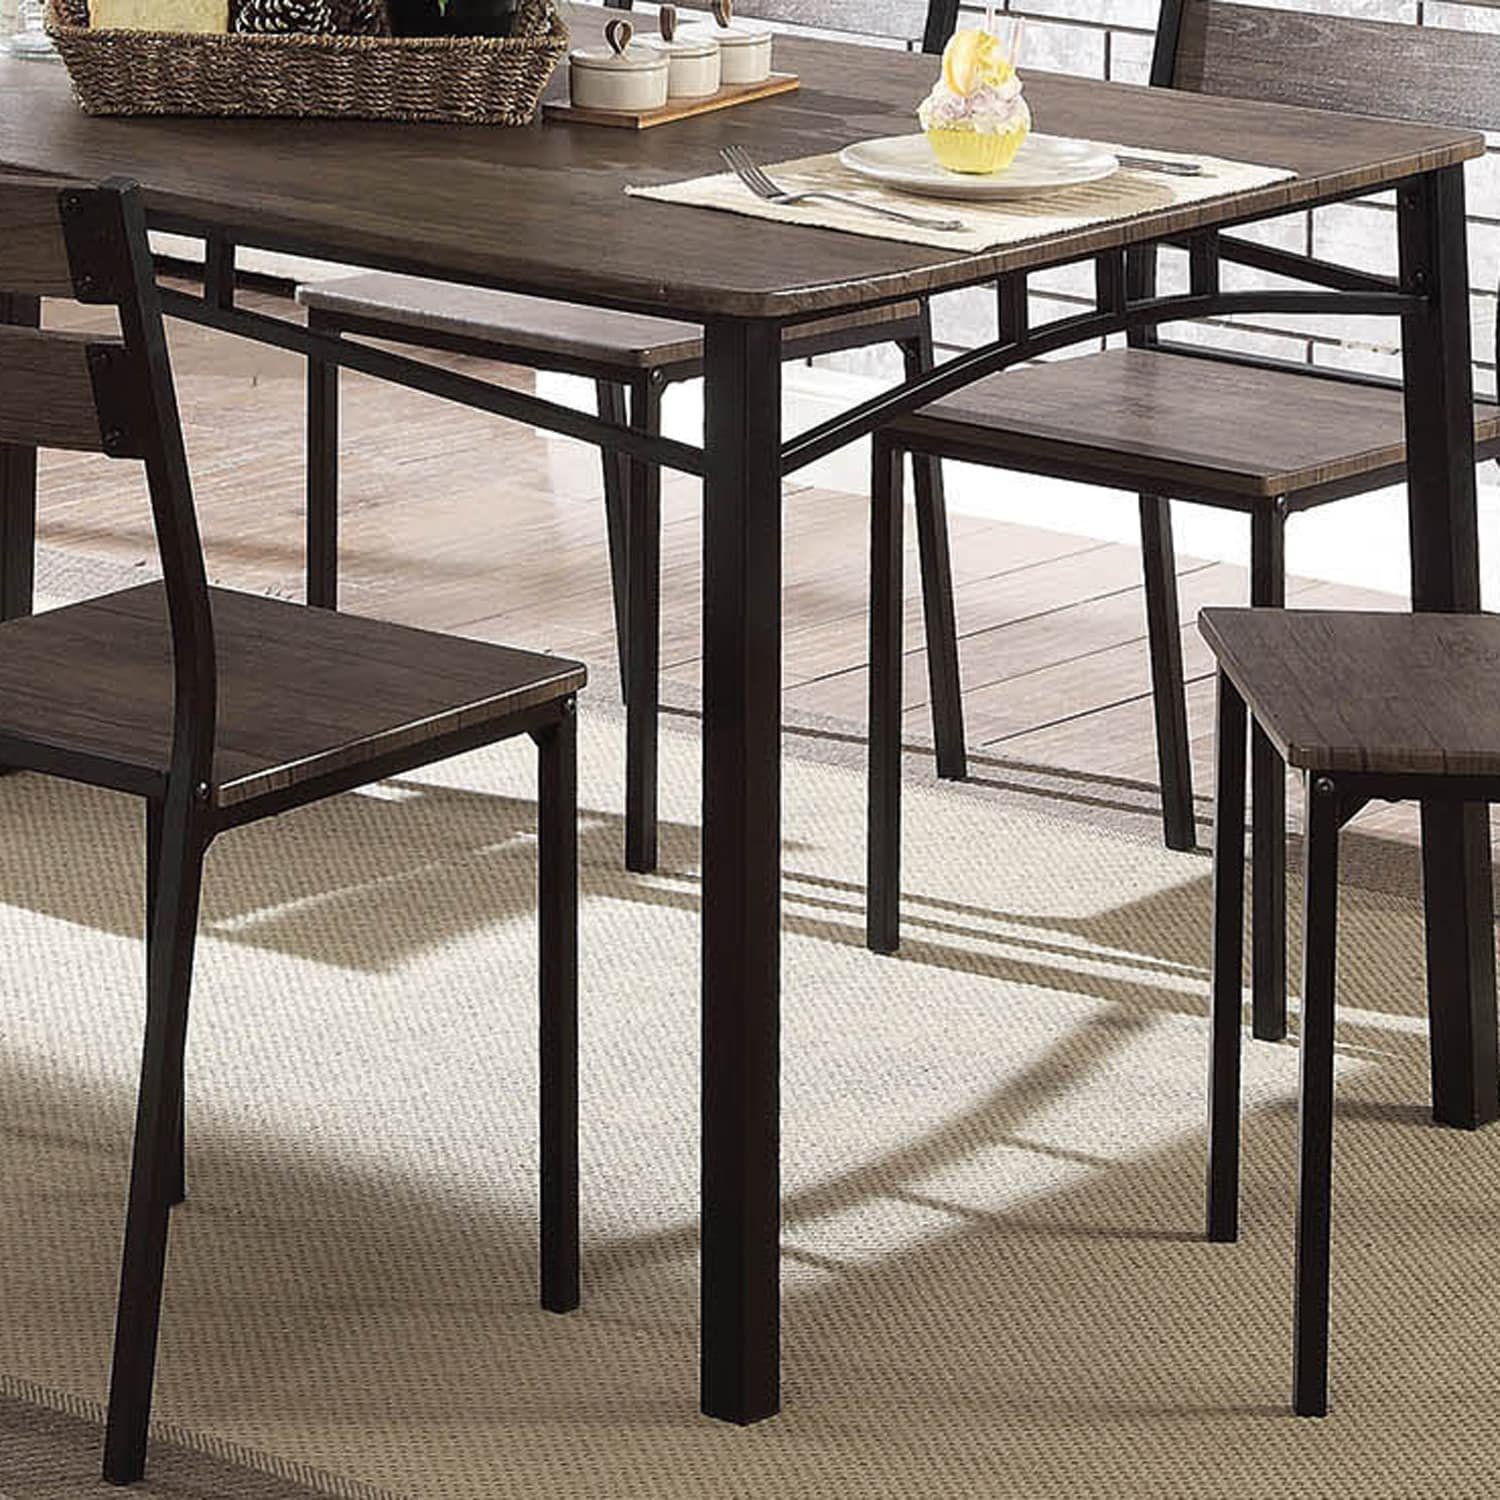 Furniture Of America Patton 7 Piece Rustic Modern Farmhouse Dining Table Set Free Shipping Today 22671341